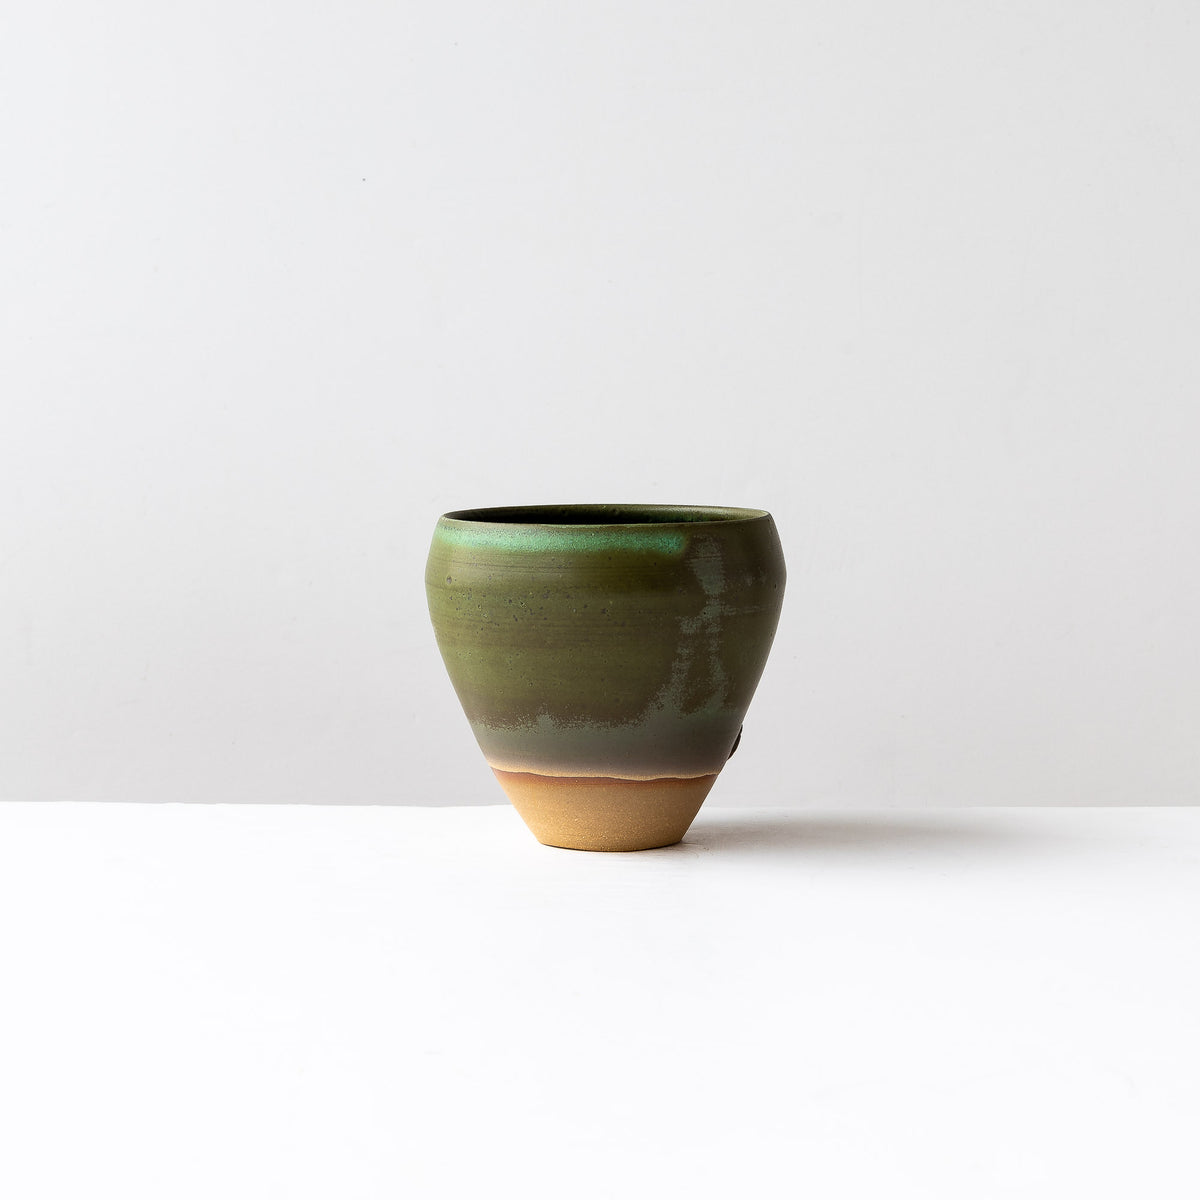 Kaki Green & Terracotta Flower Vase Handmade in Stoneware - Sold by Chic & Basta